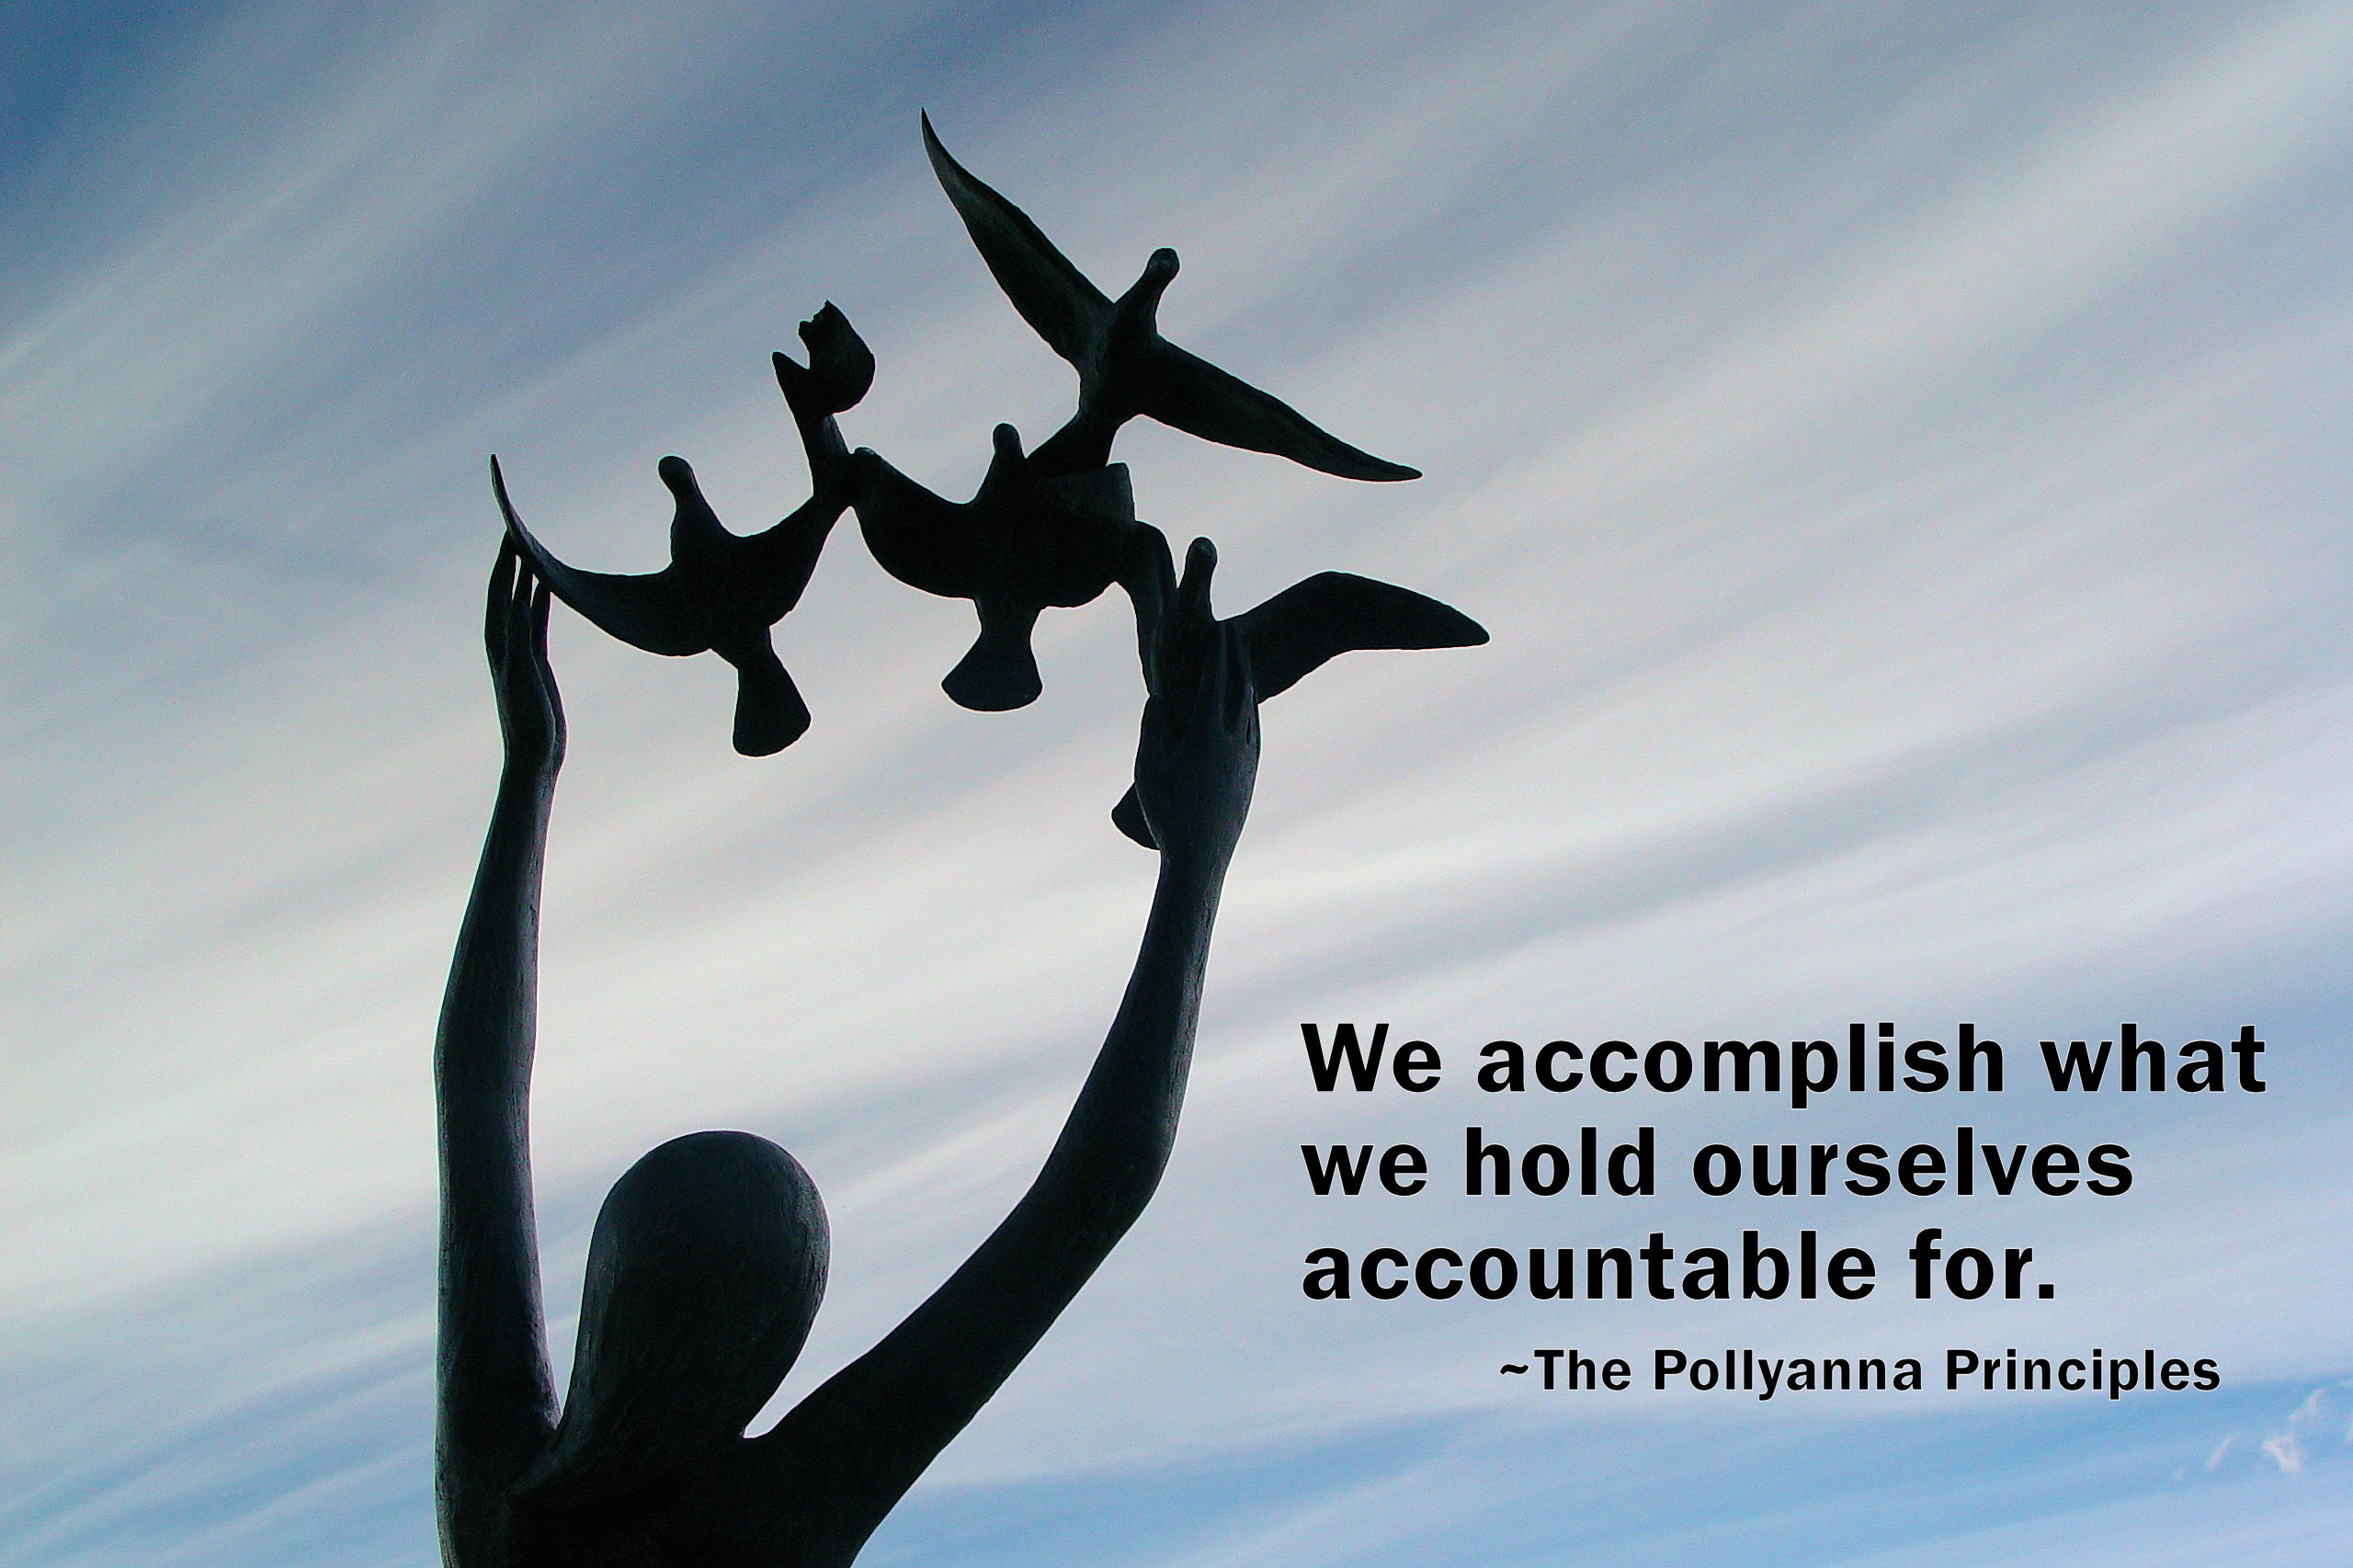 We accomplish what we hold ourselves accountable for